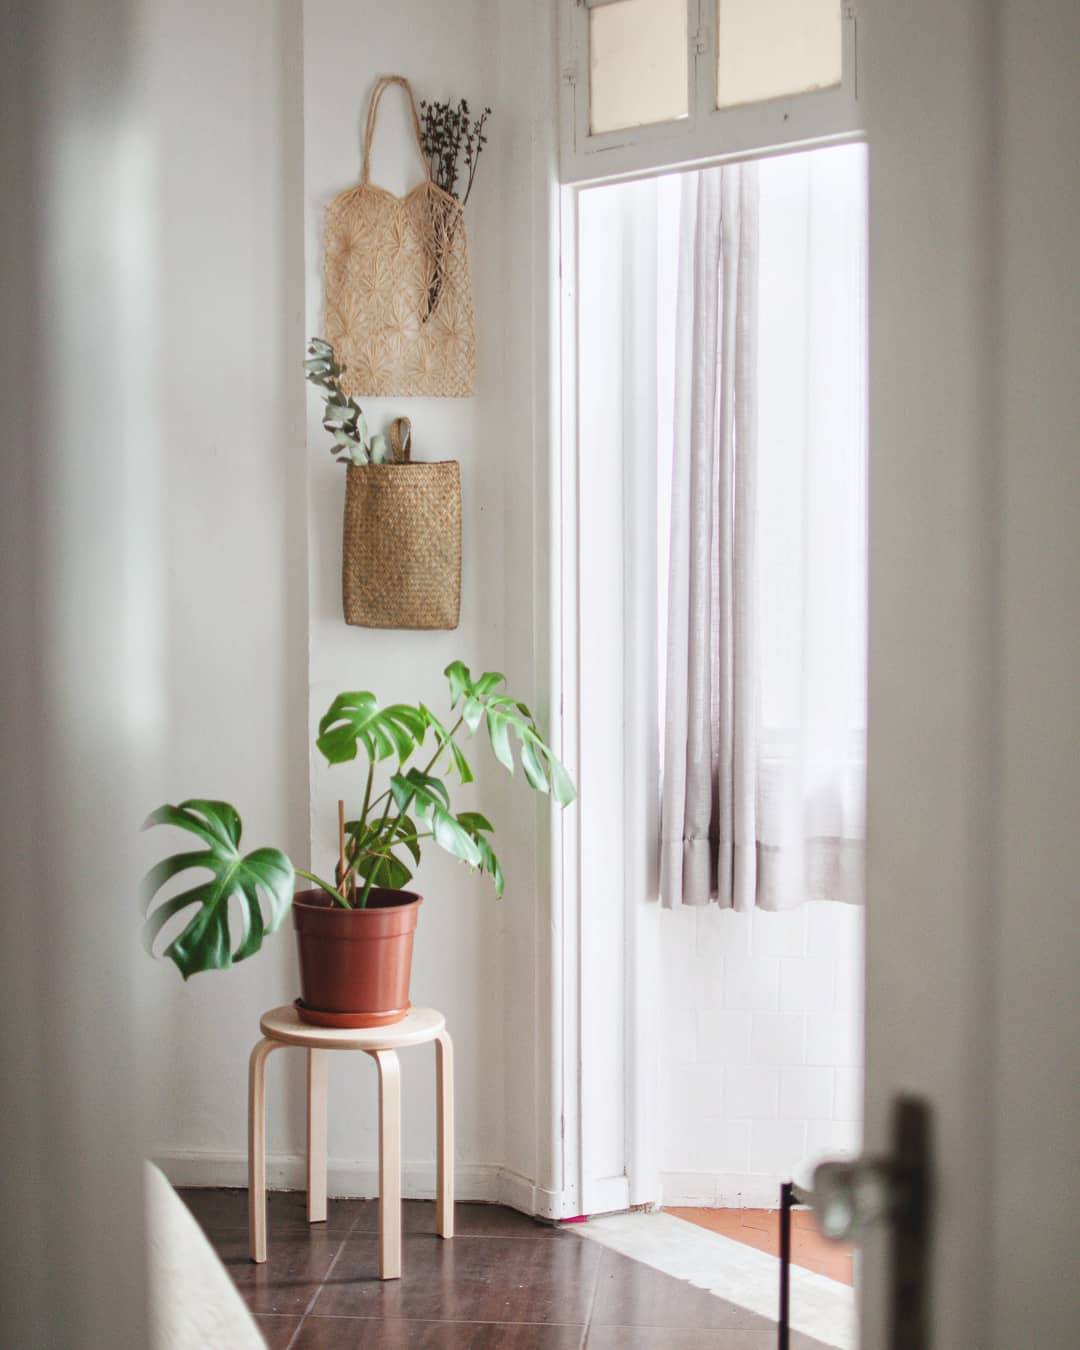 ideas-para-decorar-casa-con-monstera